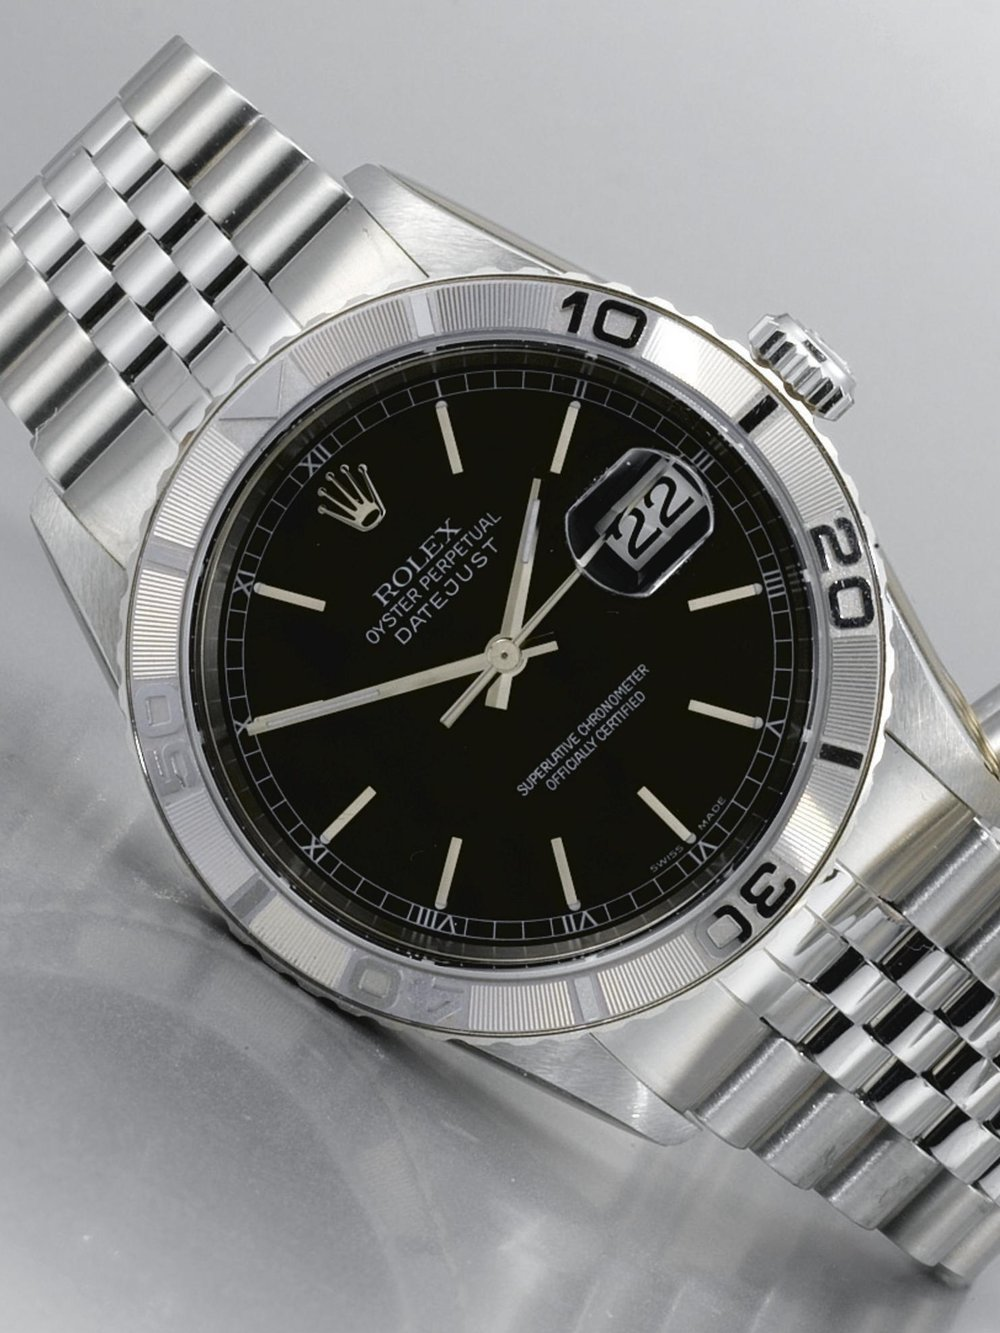 Rolex Datejust Turn-o-graph Ref. 16264 with black dial